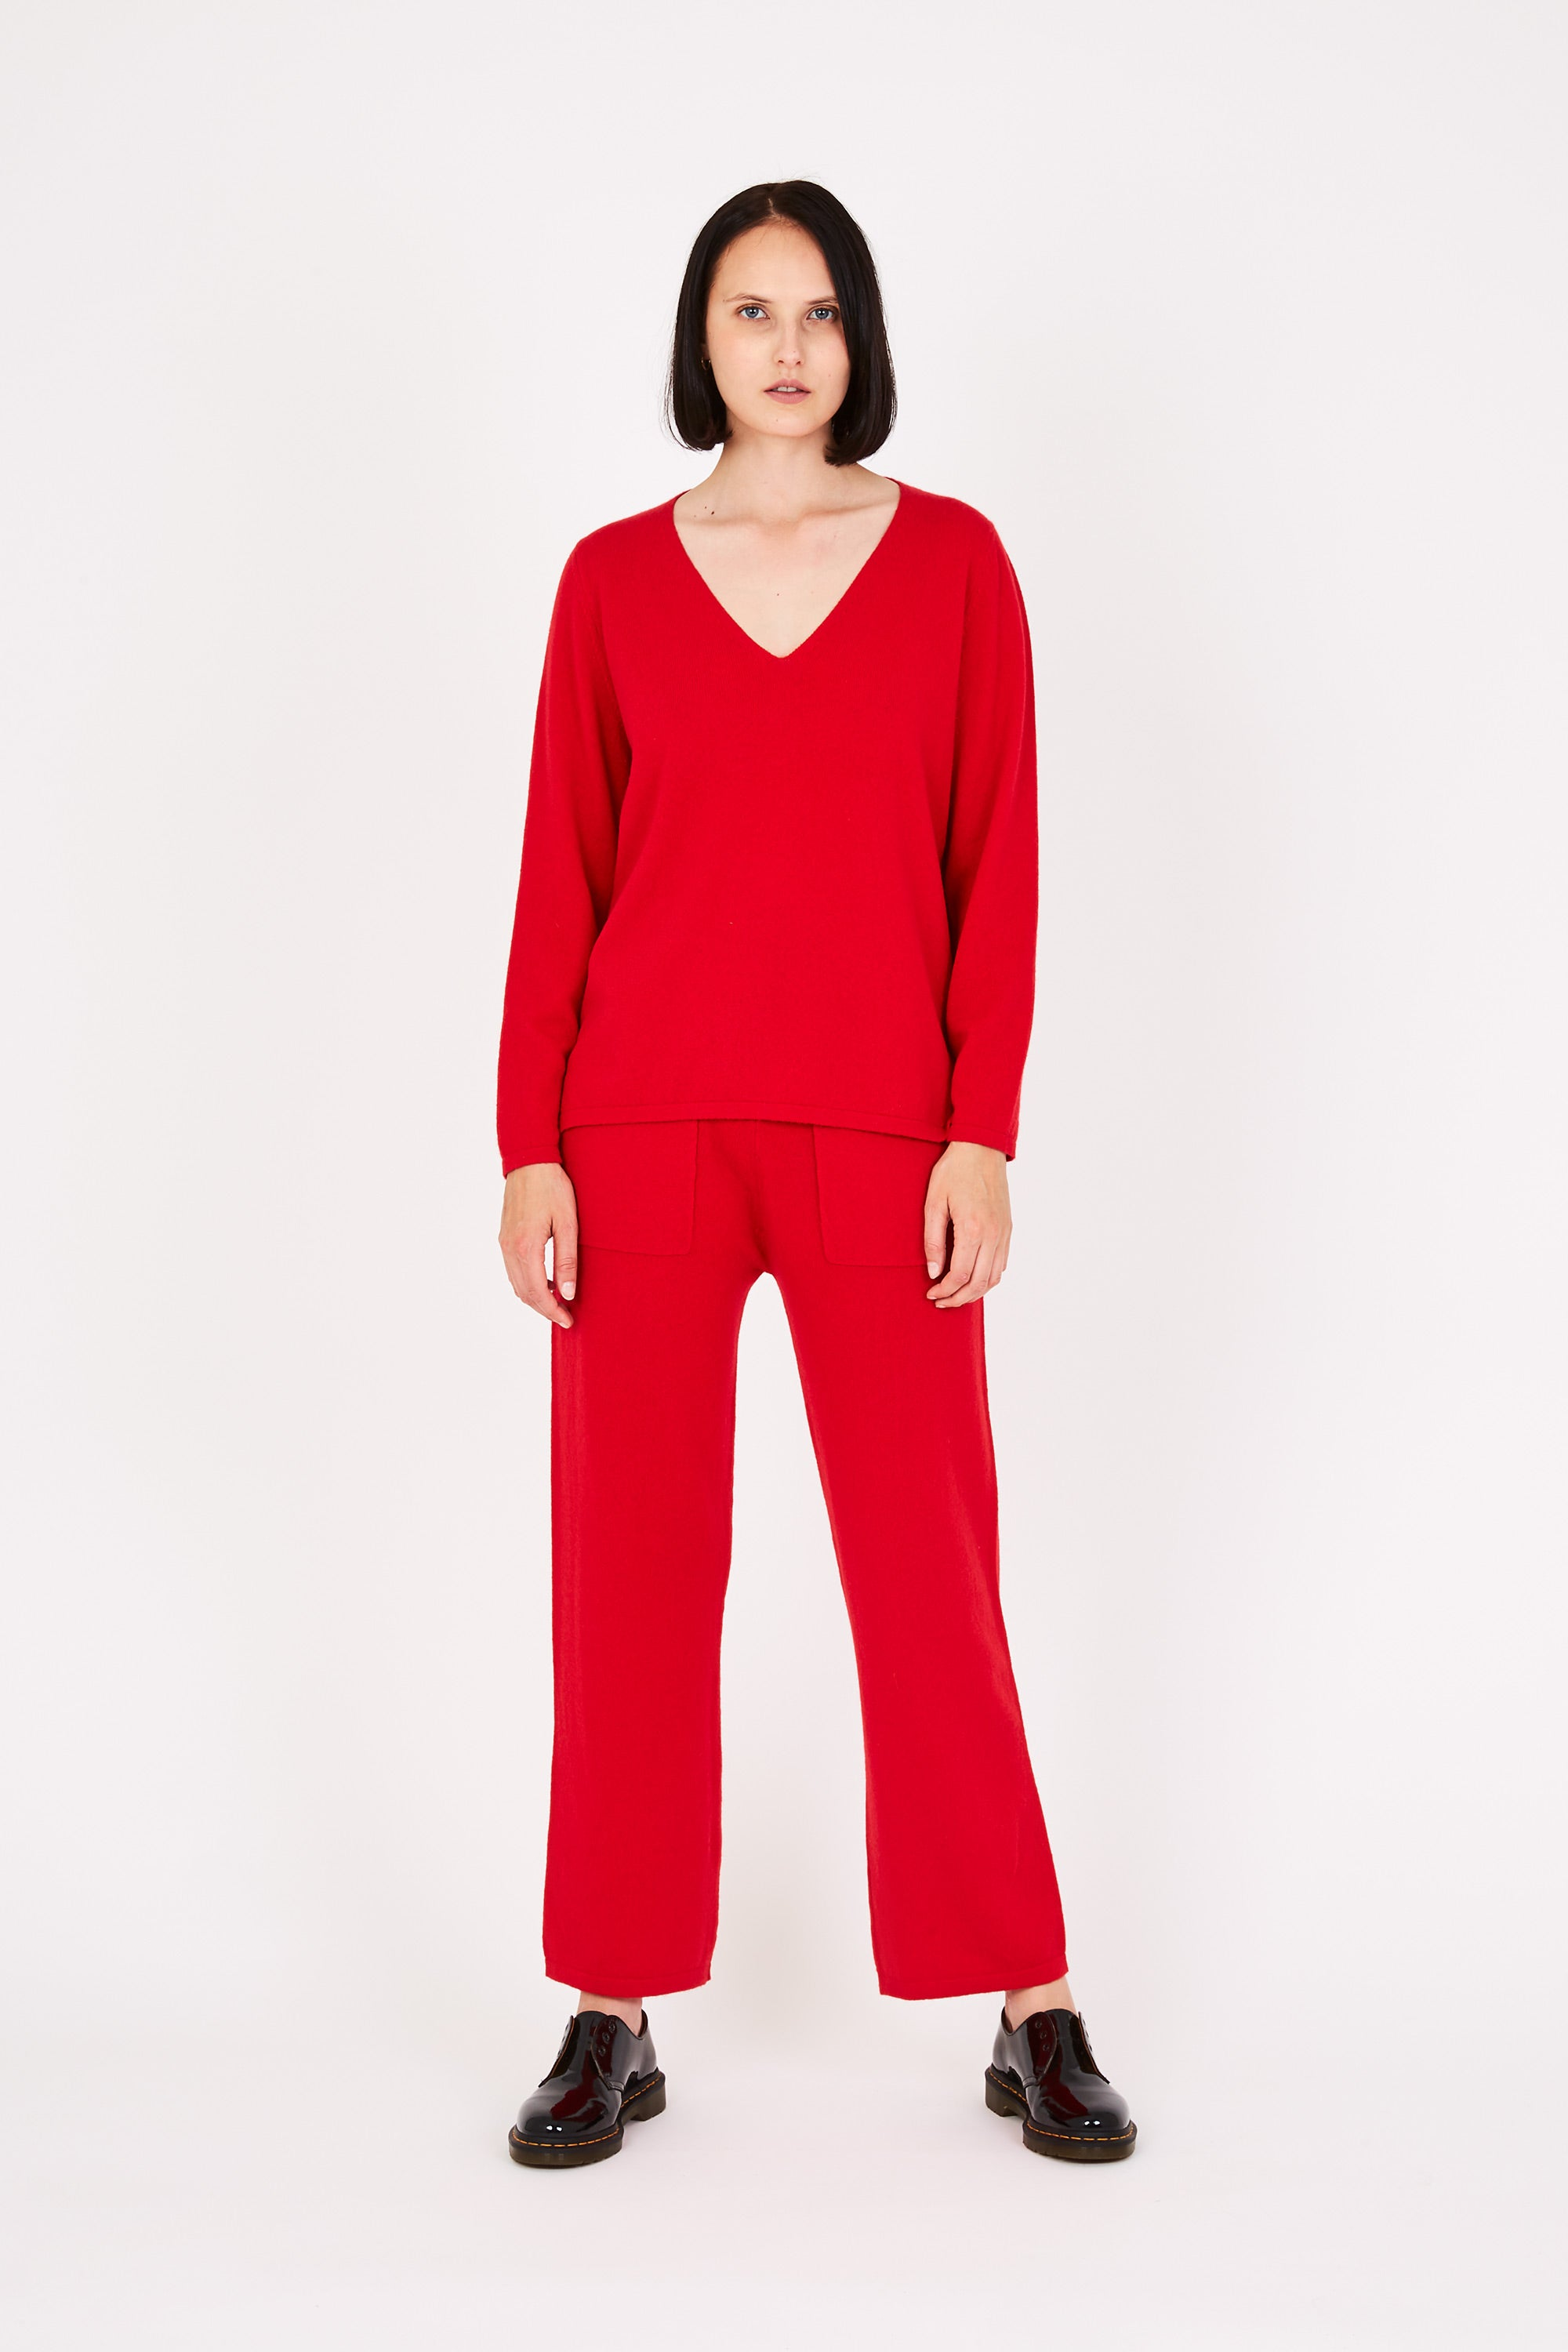 Vija sweater in red